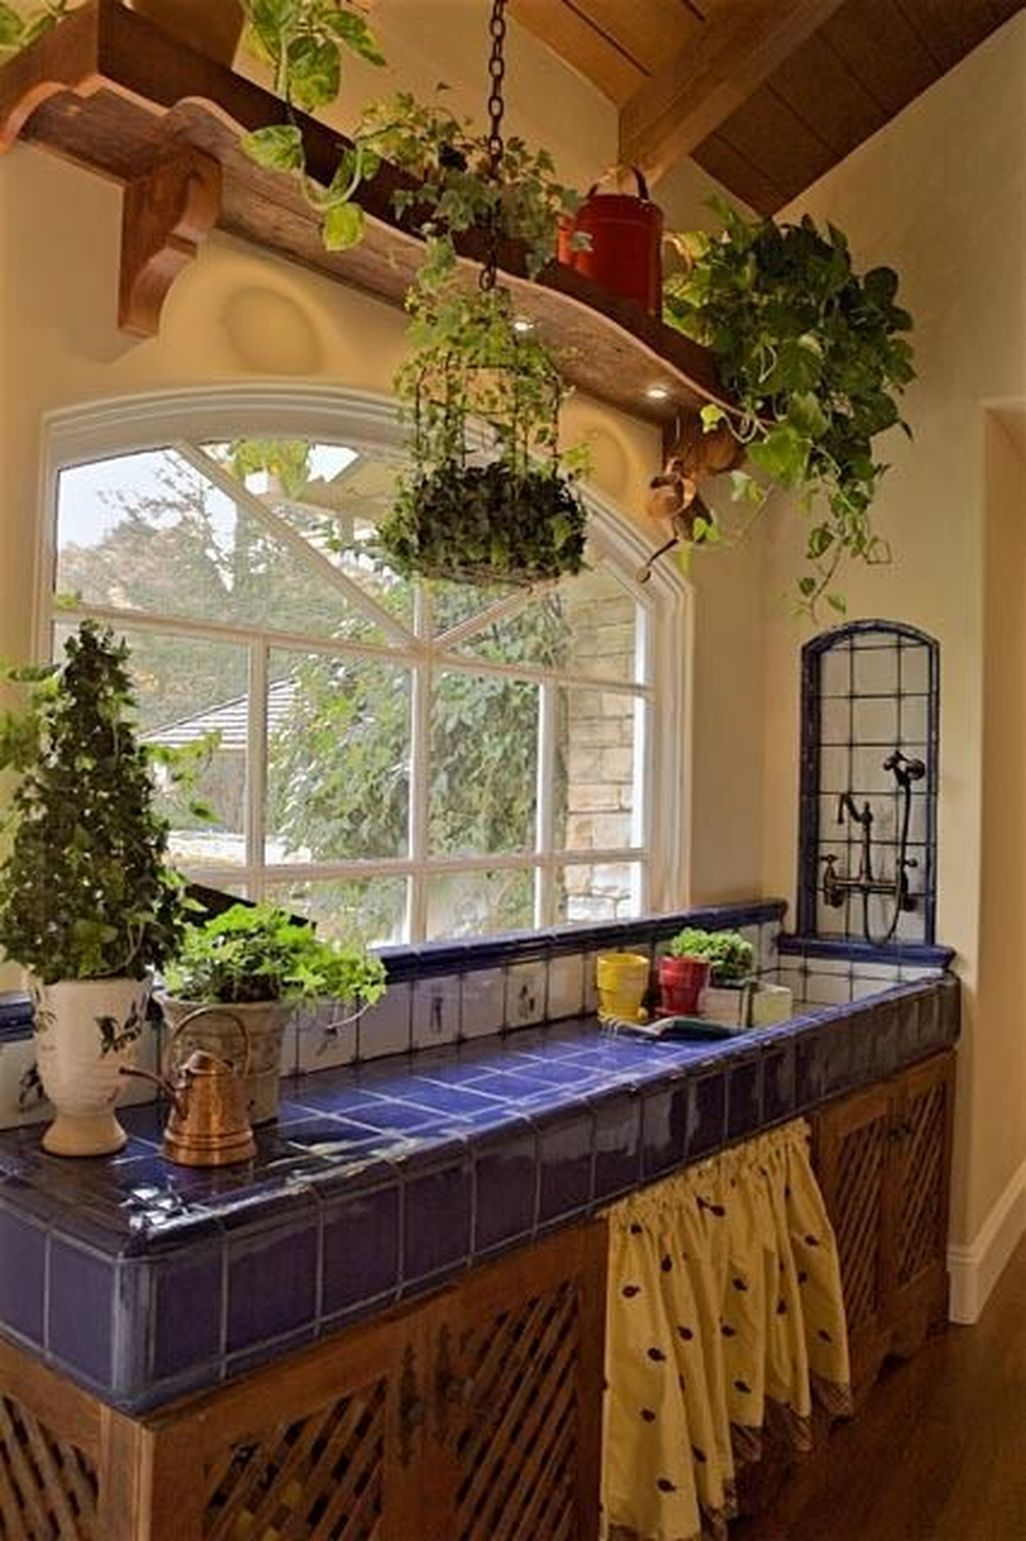 10 Tiny Country kitchen ideas for small spaces 6716264011